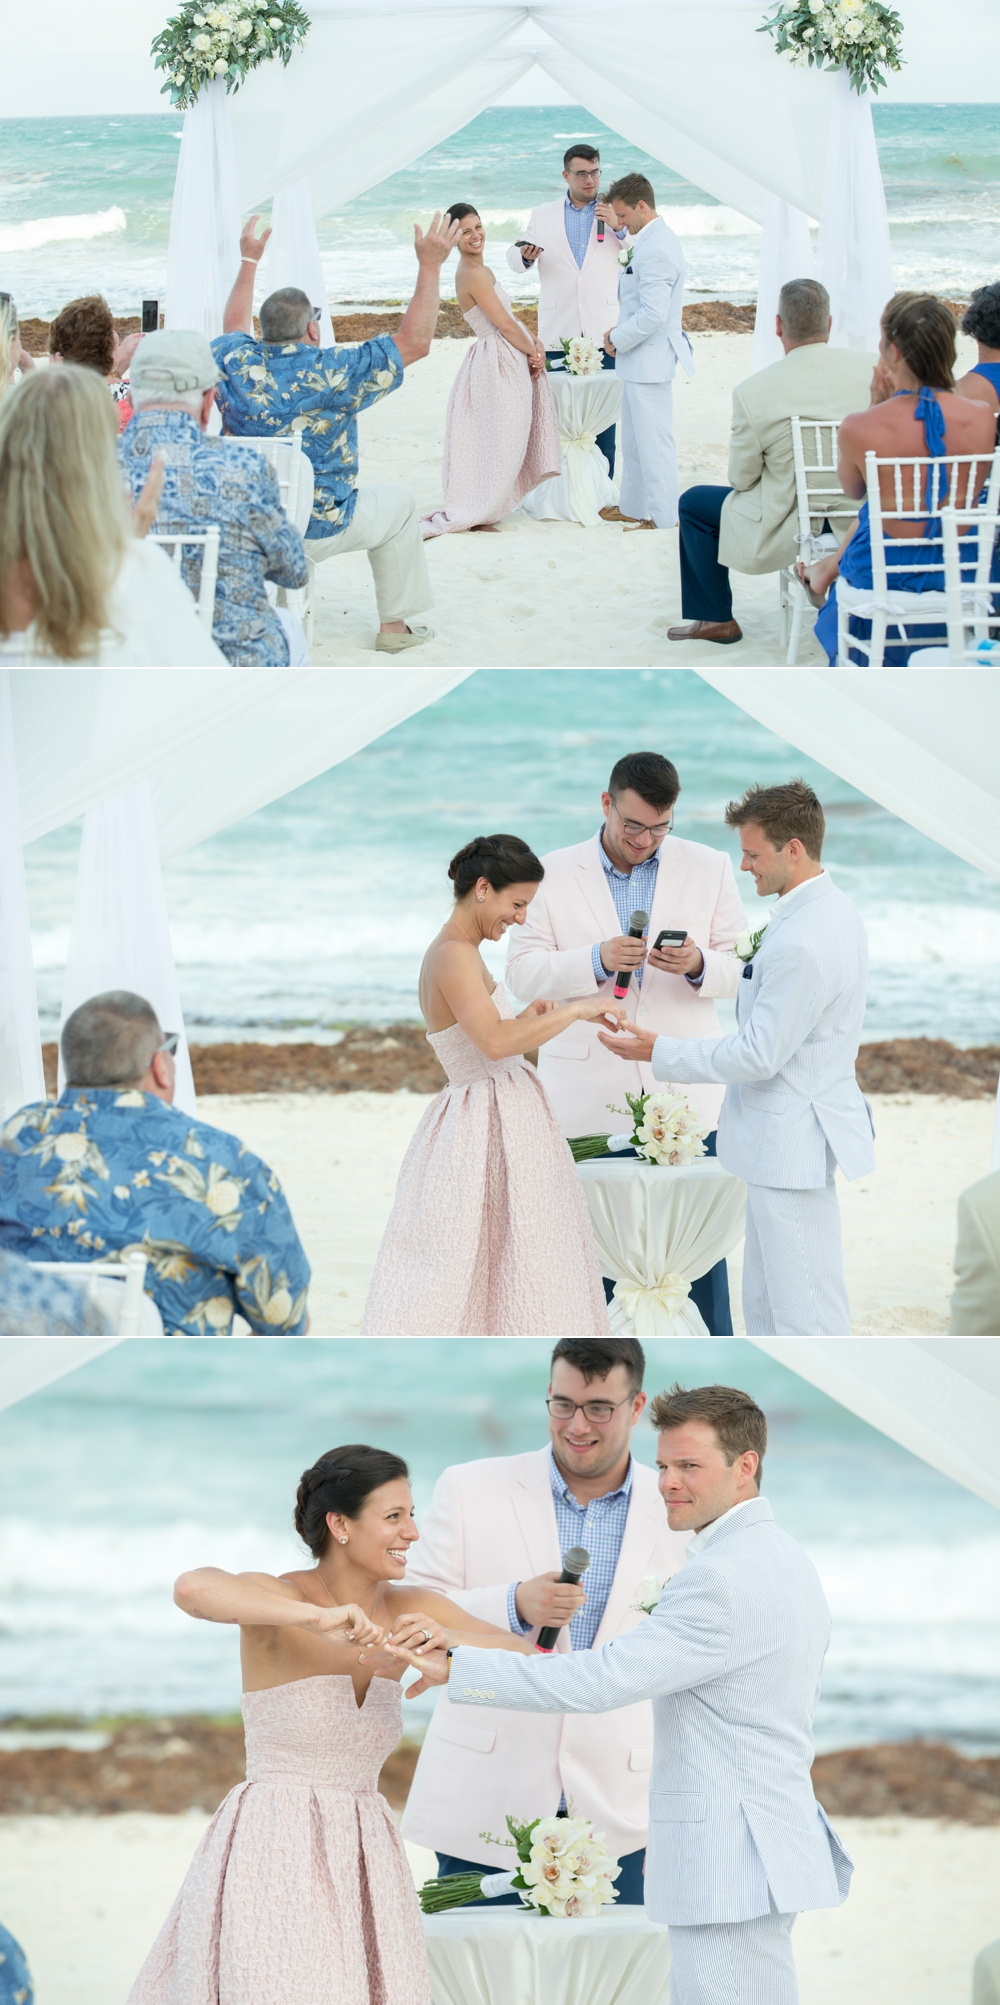 SomerbyJonesPhotography_IberostarGrandHotelParaiso_Mexico_Wedding_0026.jpg